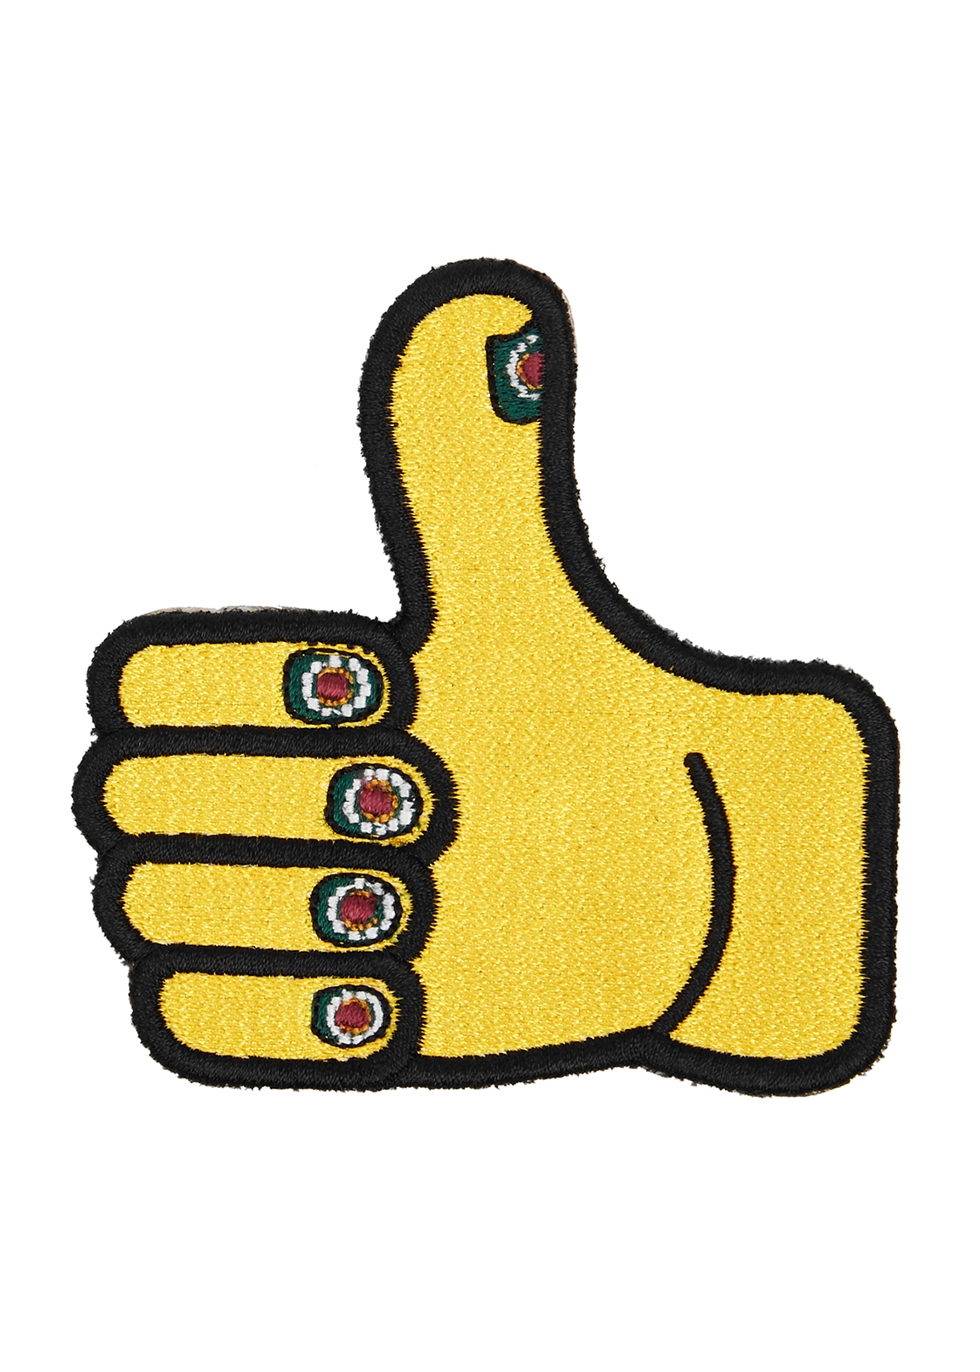 The Thumbs Up embroidered patch